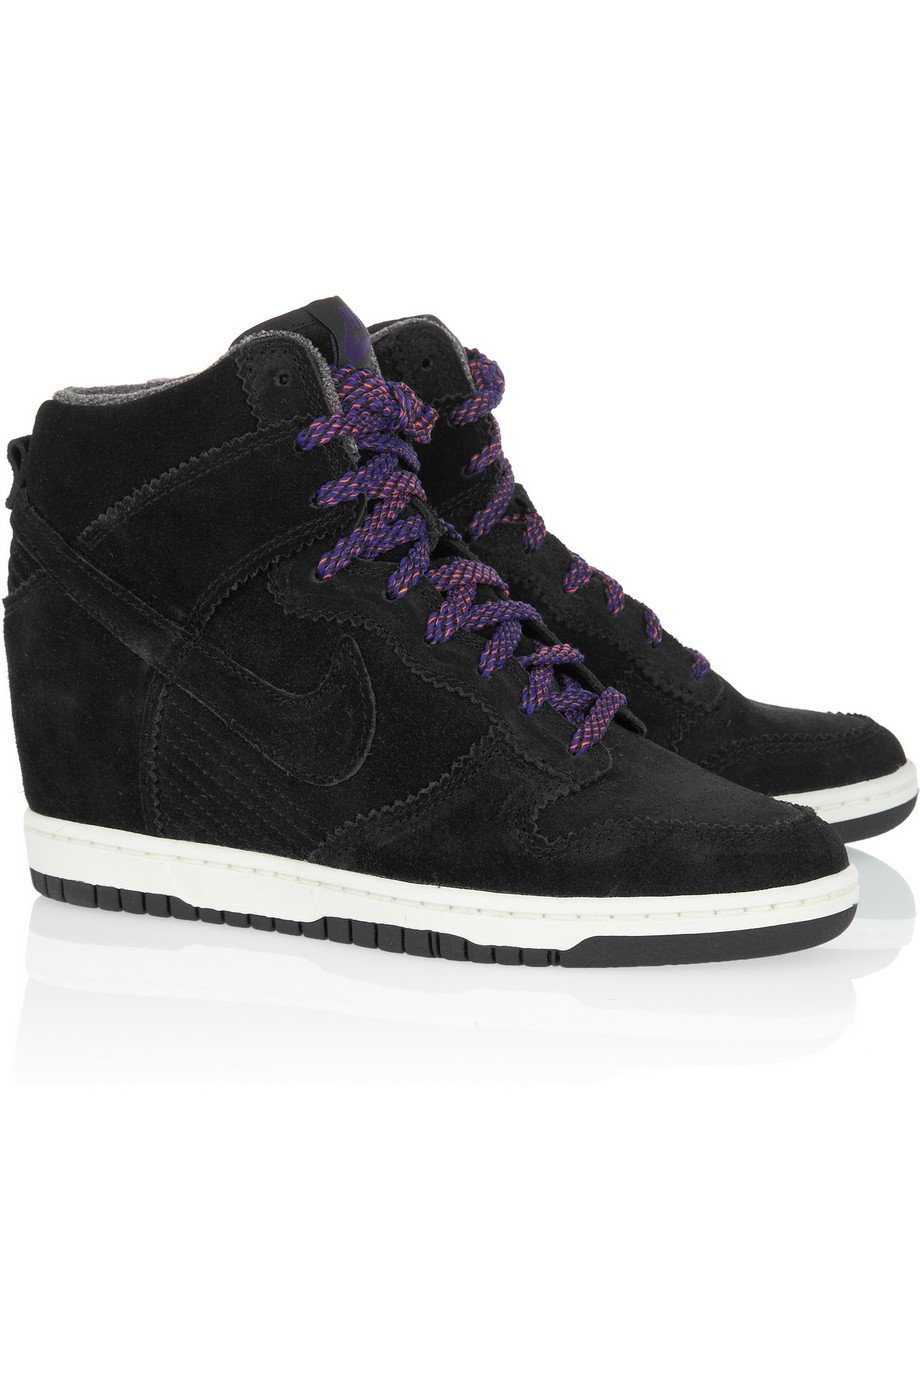 nike dunk sky hi suede wedge sneakers in black sky lyst. Black Bedroom Furniture Sets. Home Design Ideas